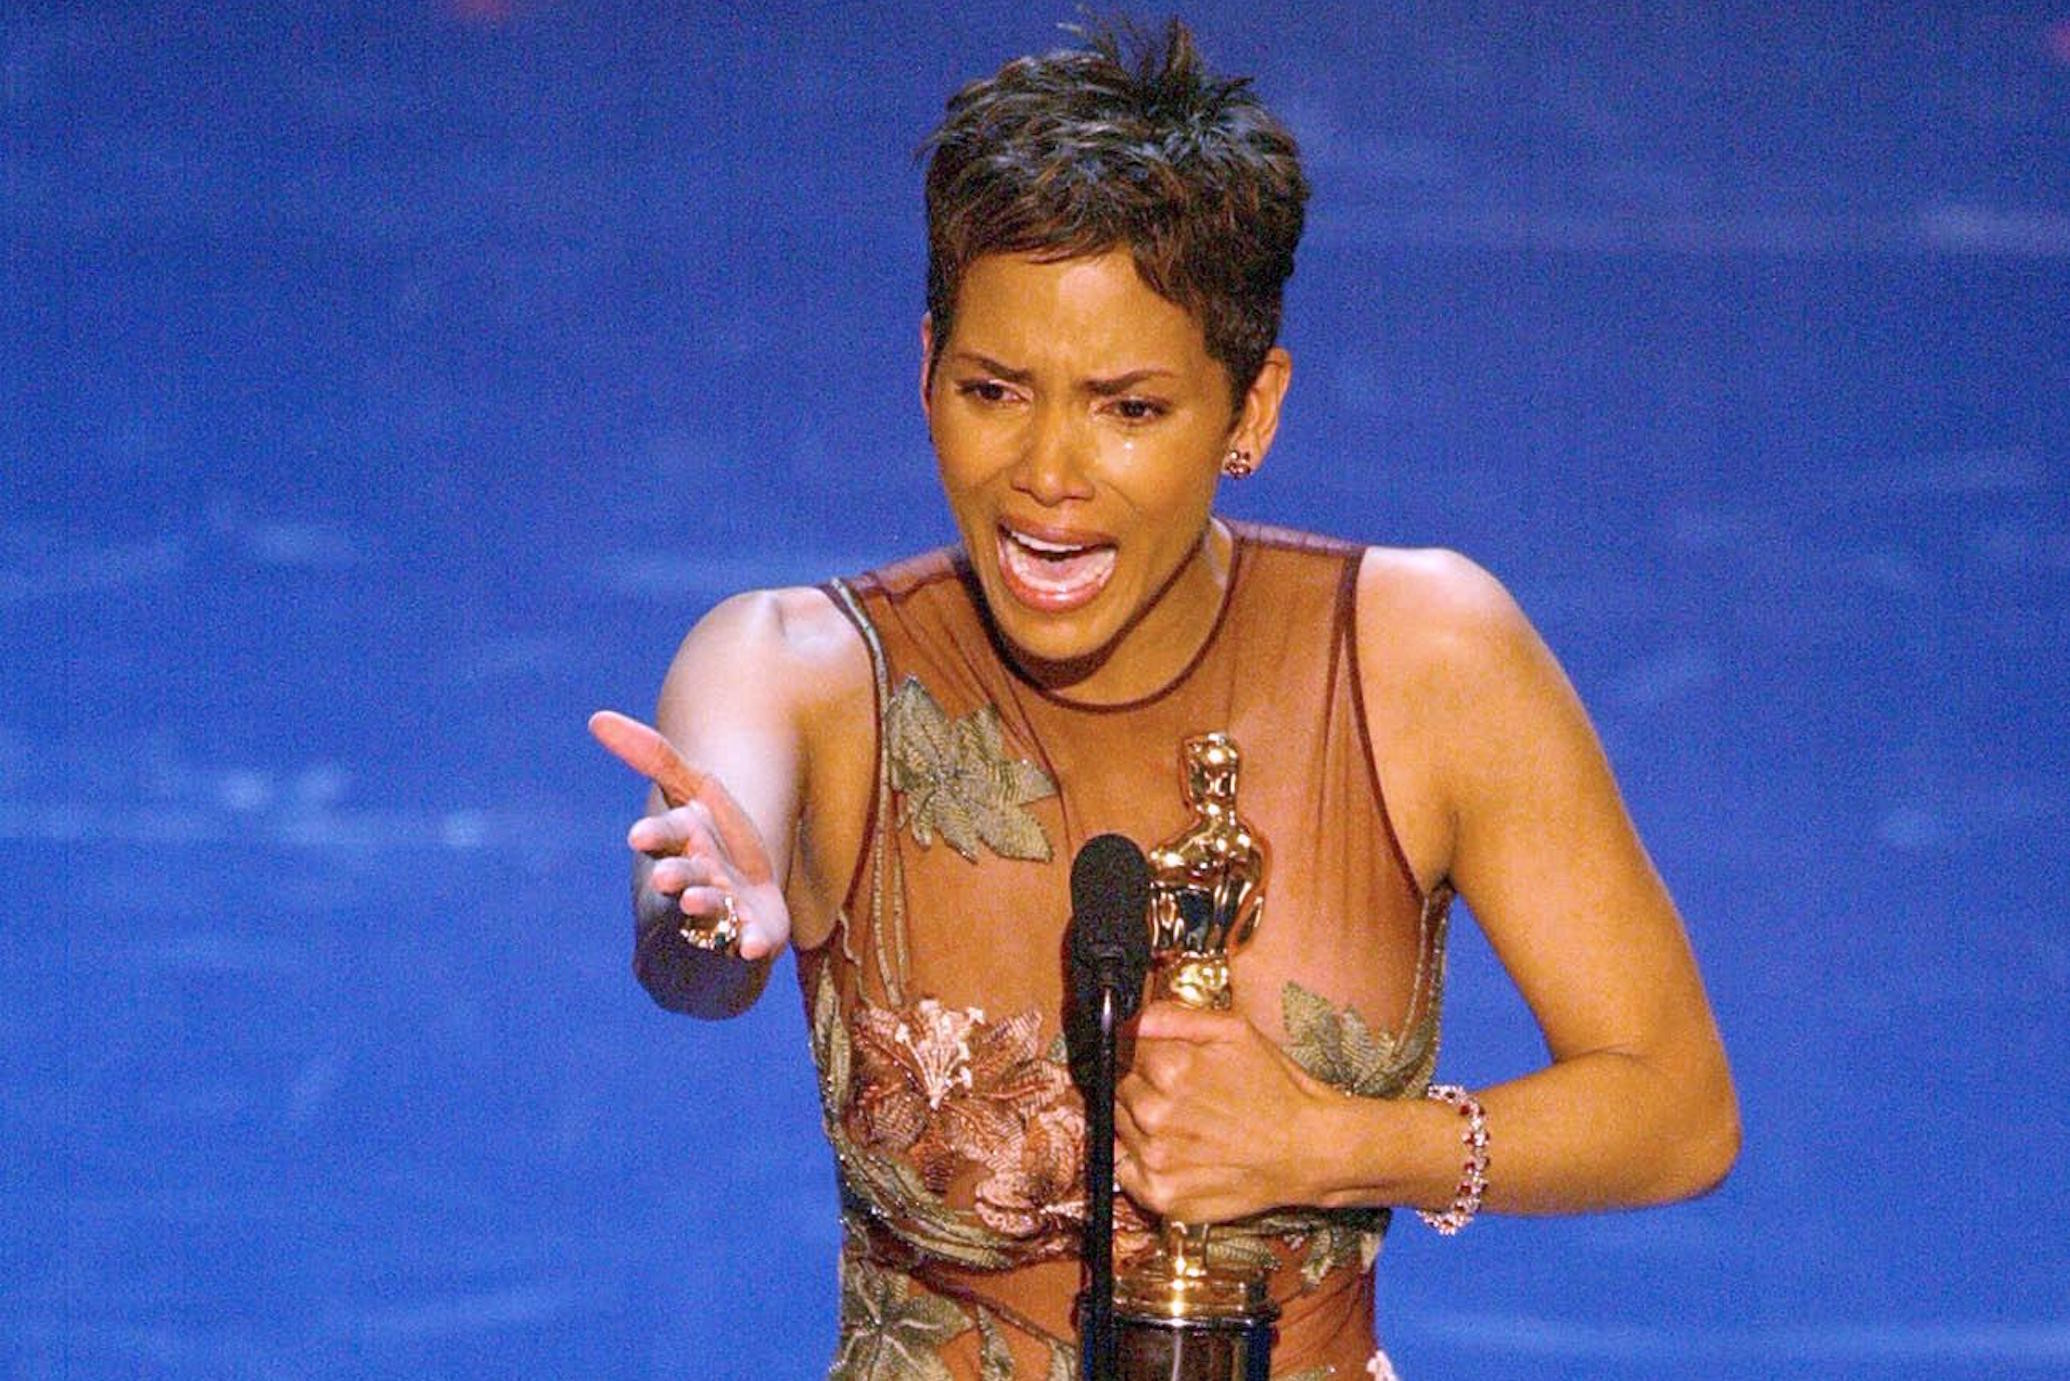 13 of the Best Oscar Speeches of All Time